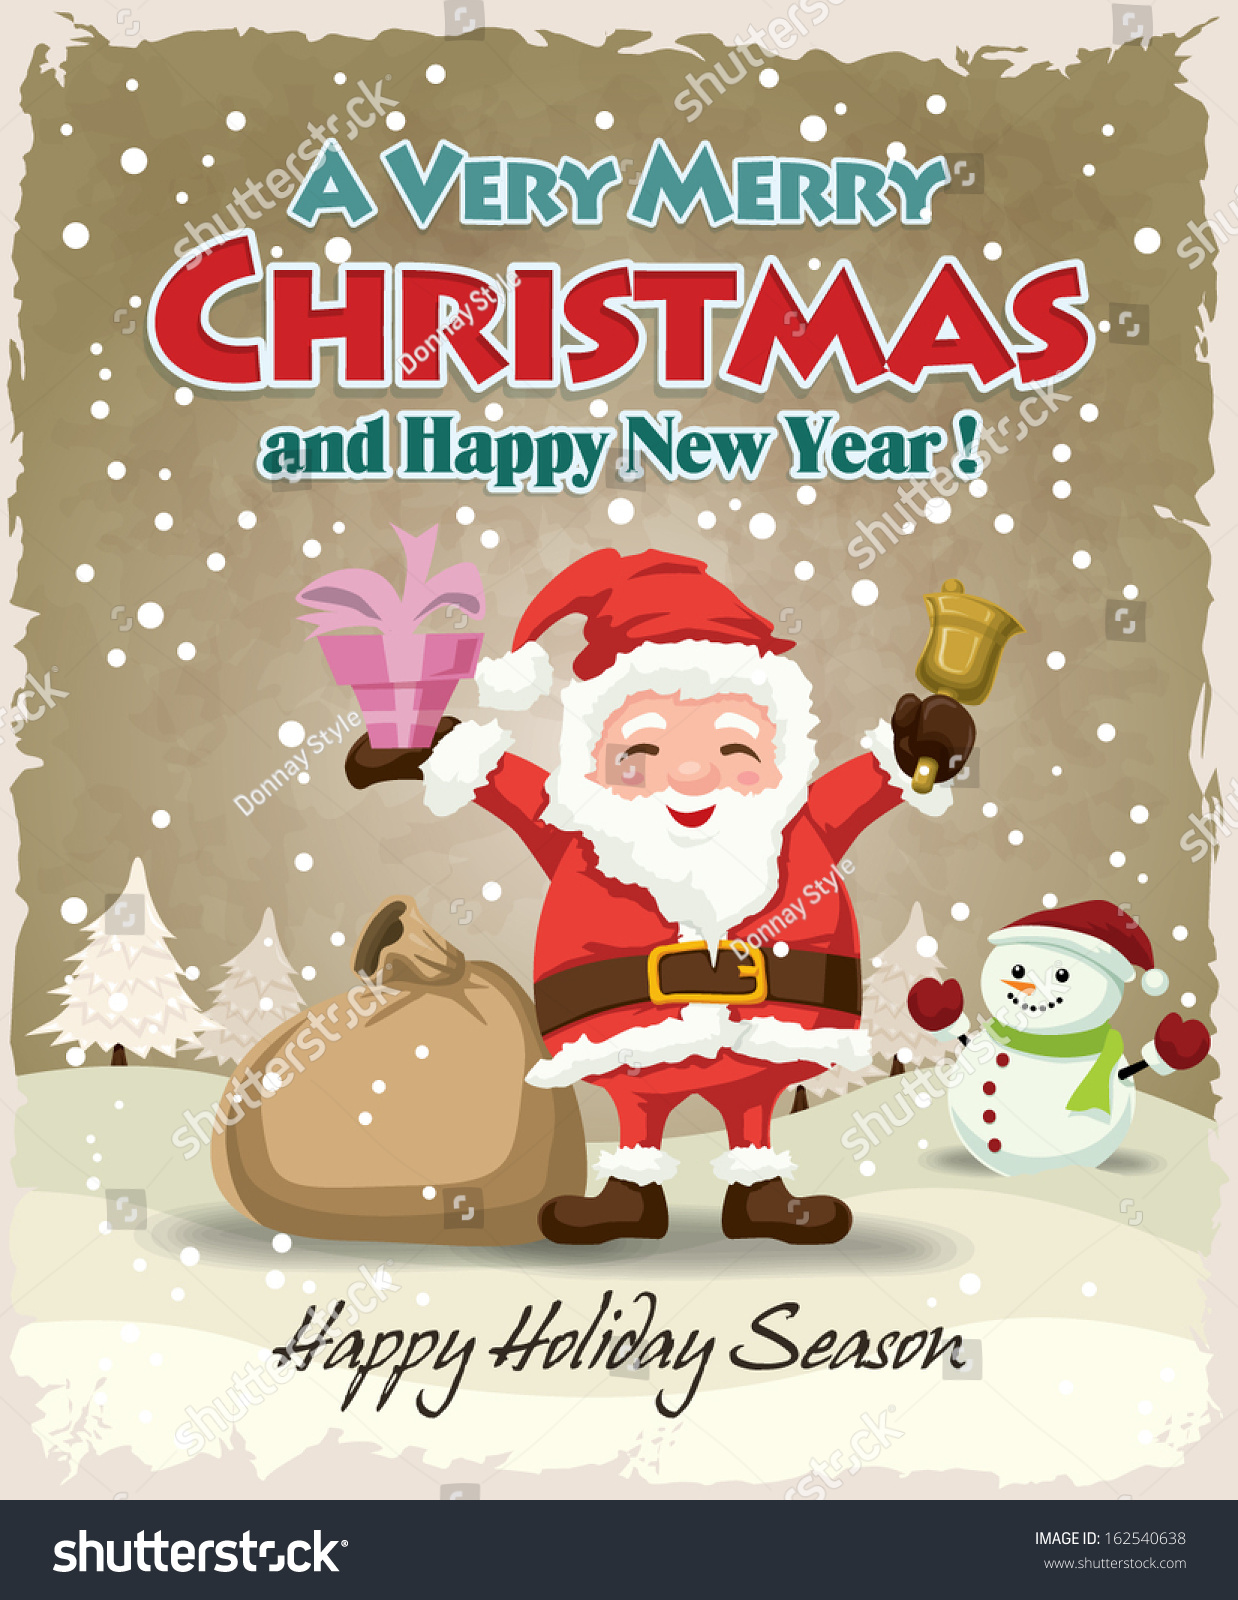 Xmas poster design - Vintage Christmas Poster Design With Santa Claus And Snowman